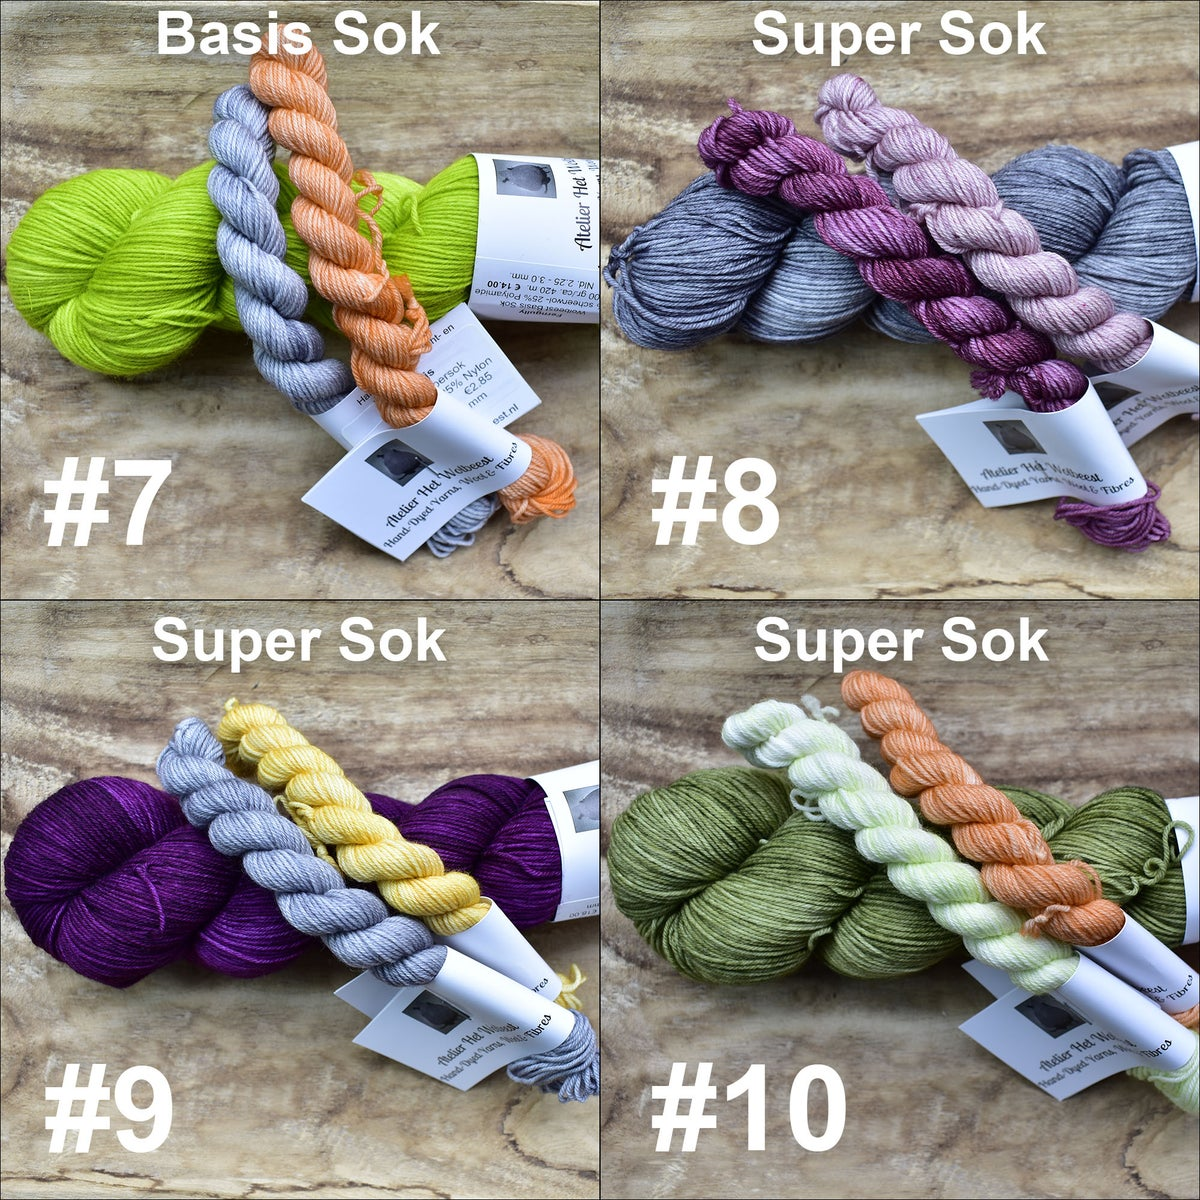 Braidalot socks kit